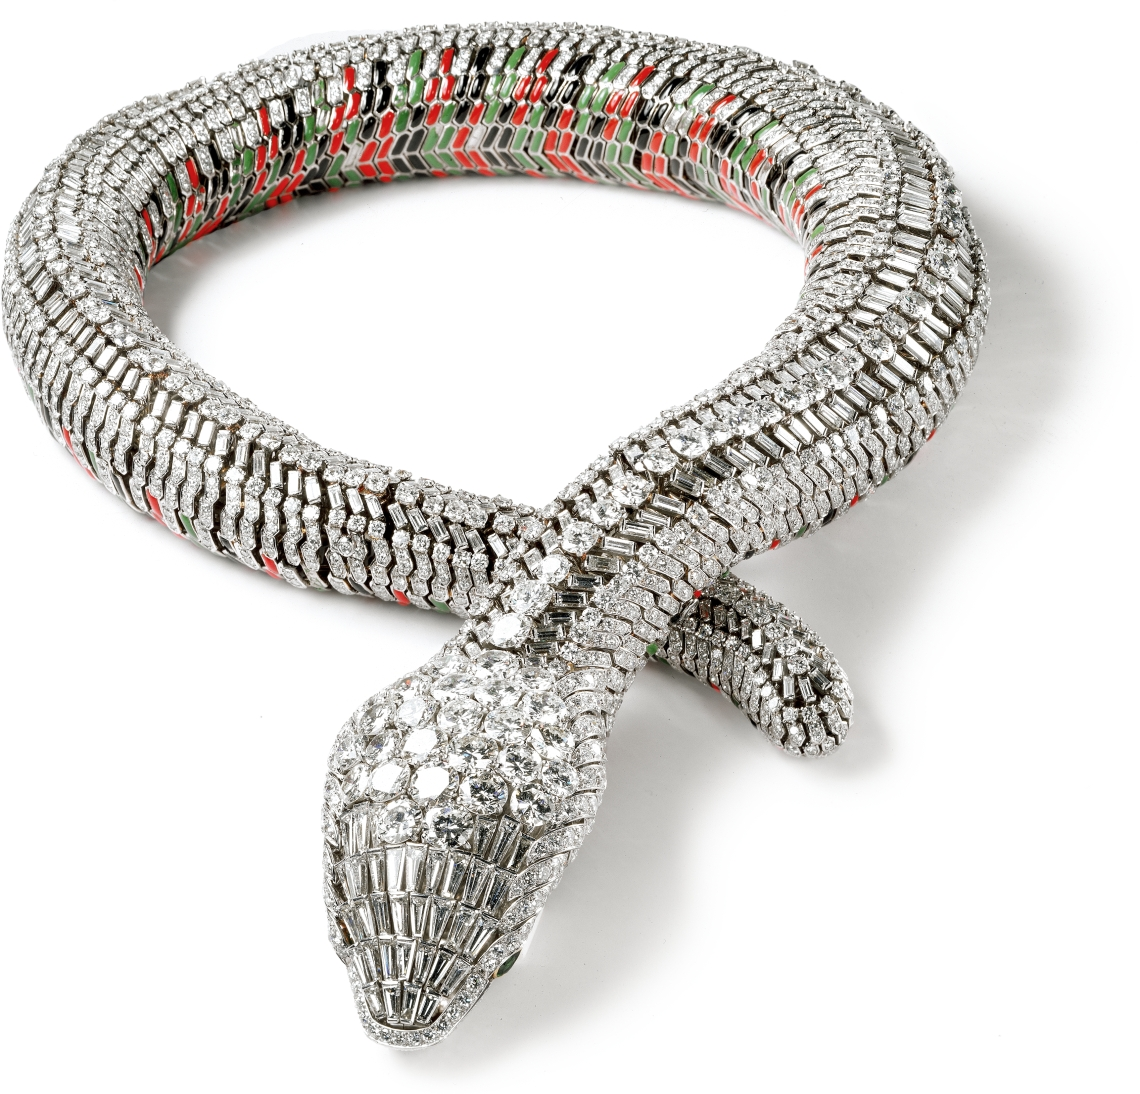 Cartier, Collier Serpent, 1968. Collectie Cartier. Foto met dank aan ADAGP, Nick Welsh©